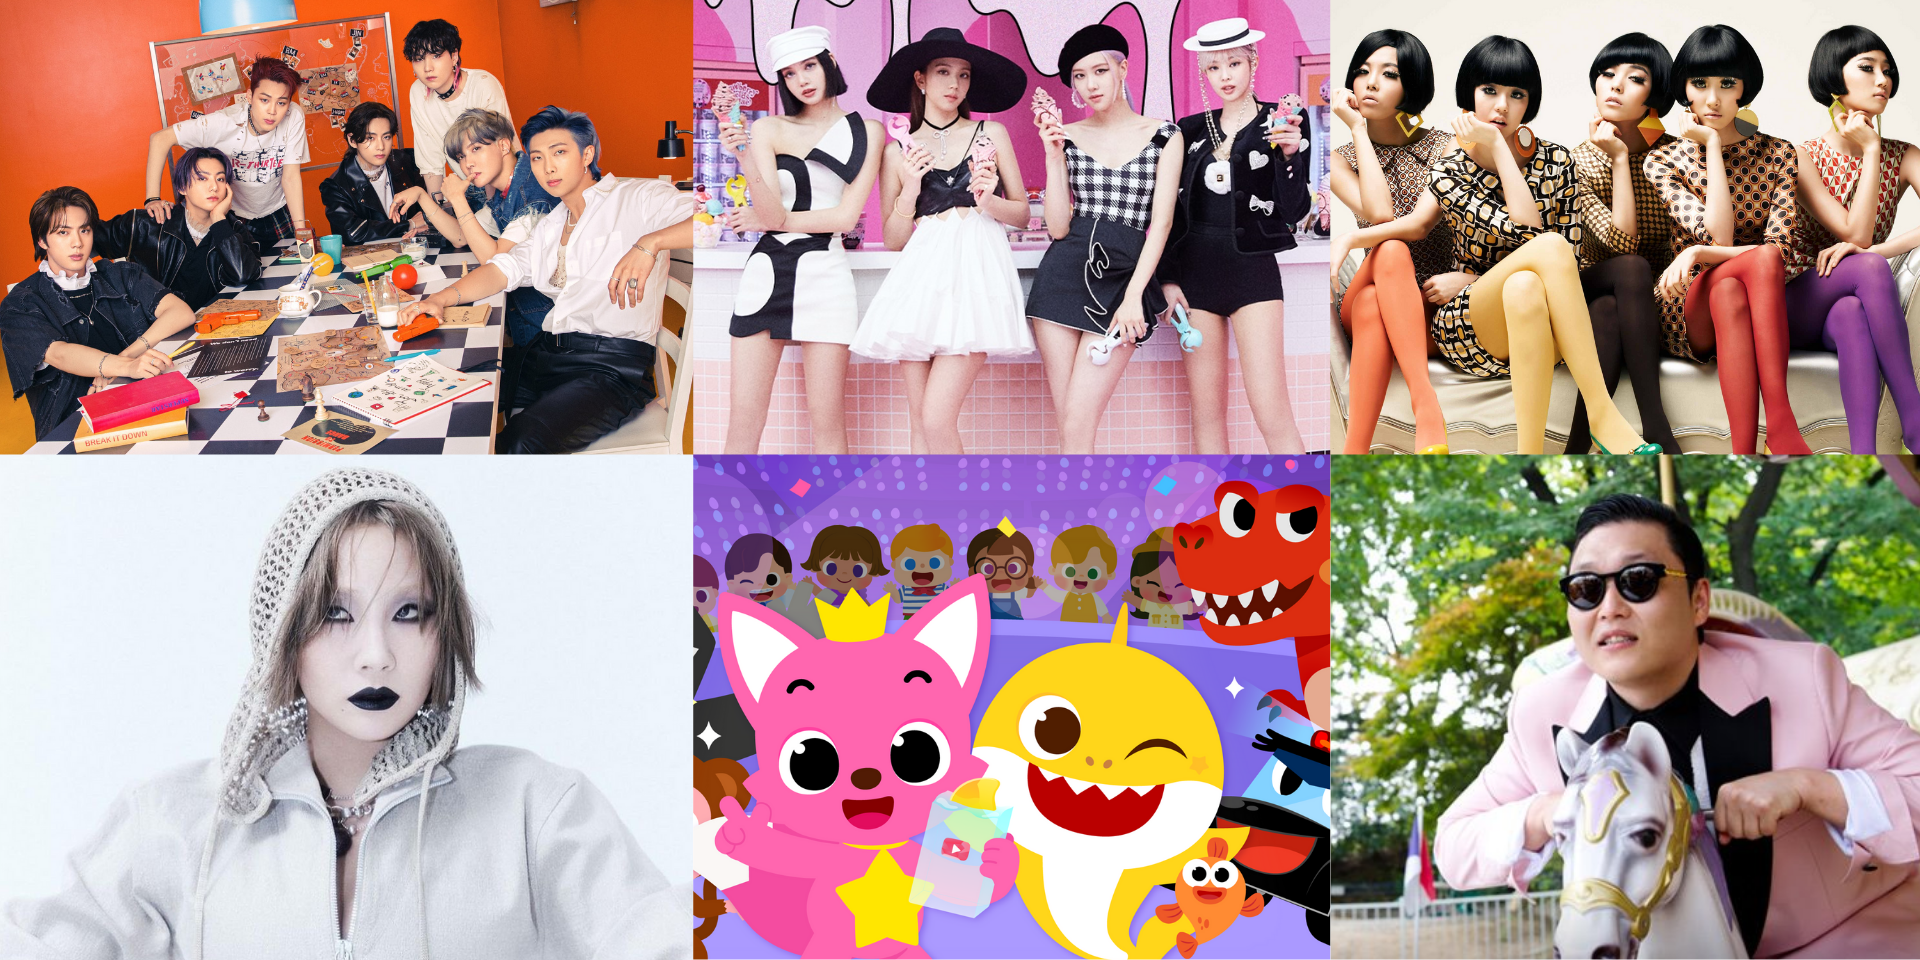 11 Asian acts who broke into the Billboard Hot 100: BTS, CL, PSY, Wonder Girls, BLACKPINK, Pinkfong, and more